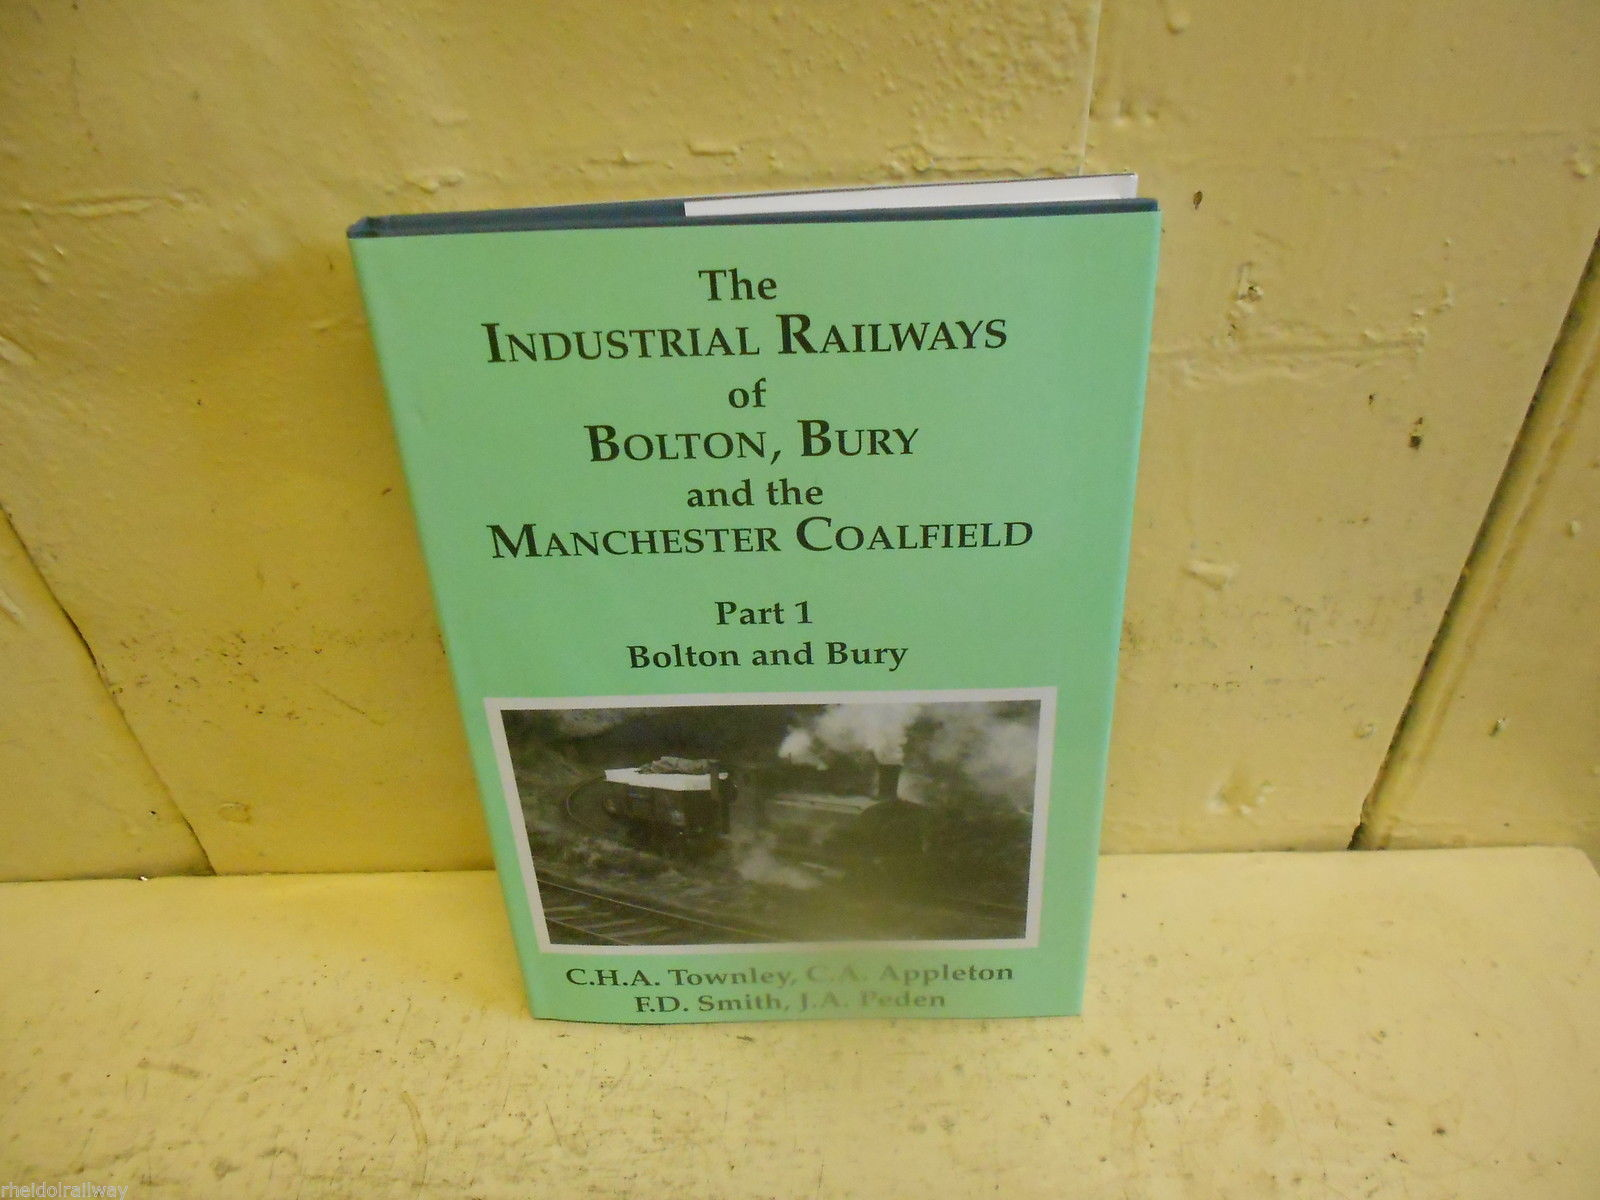 The Industrial Railways of Bolton, Bury and the Manchester Coalfield: Pt. 1:... - The Vale of Rheidol Railway